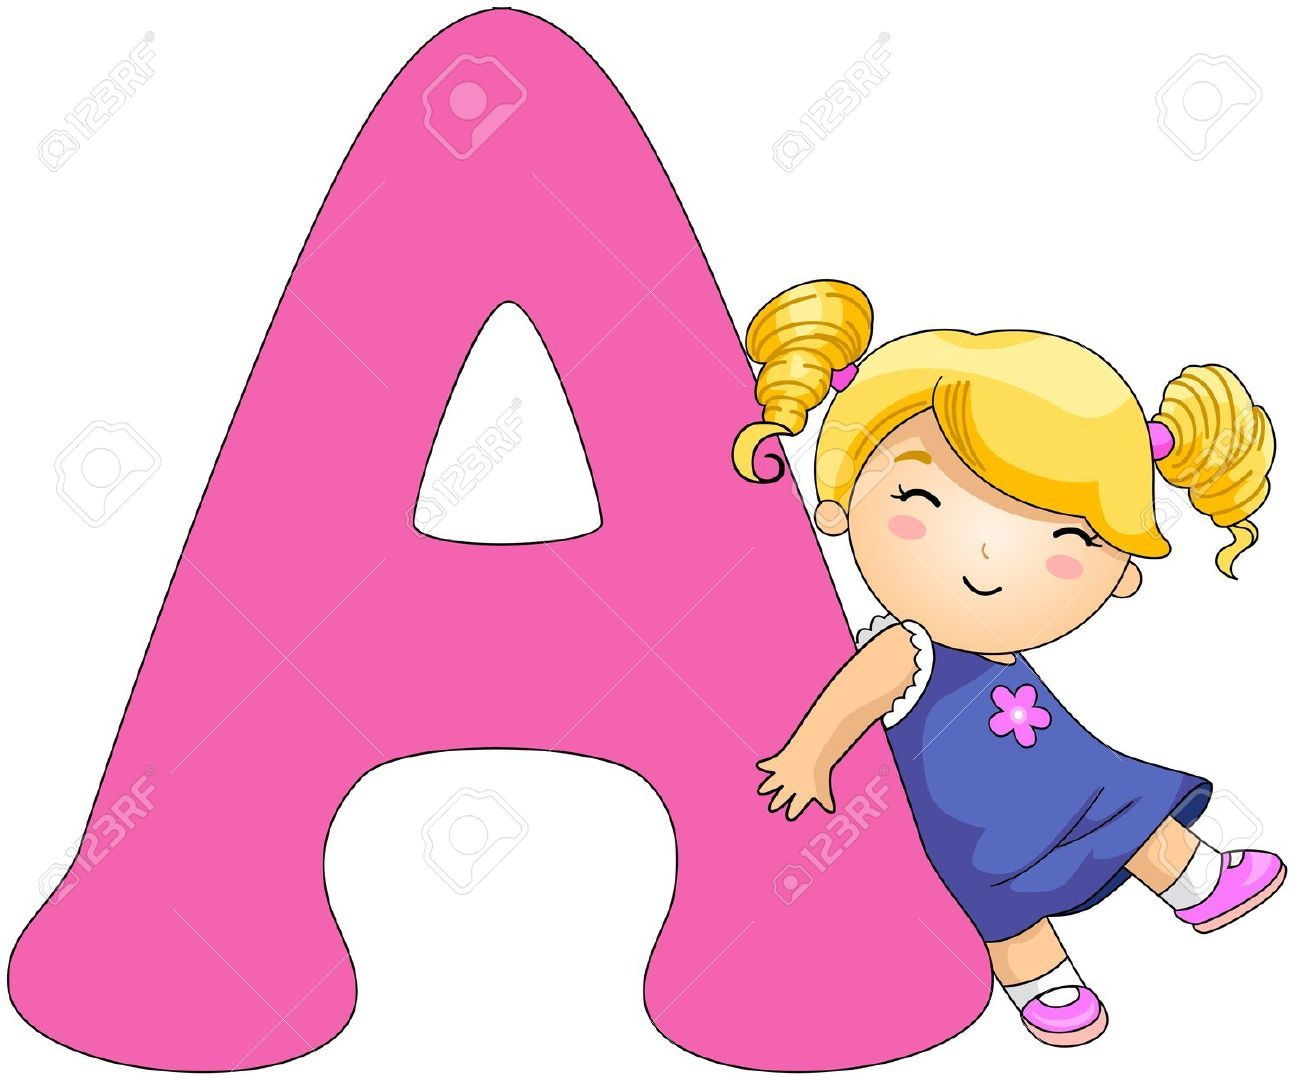 cartoon alphabet letters clip art #19.